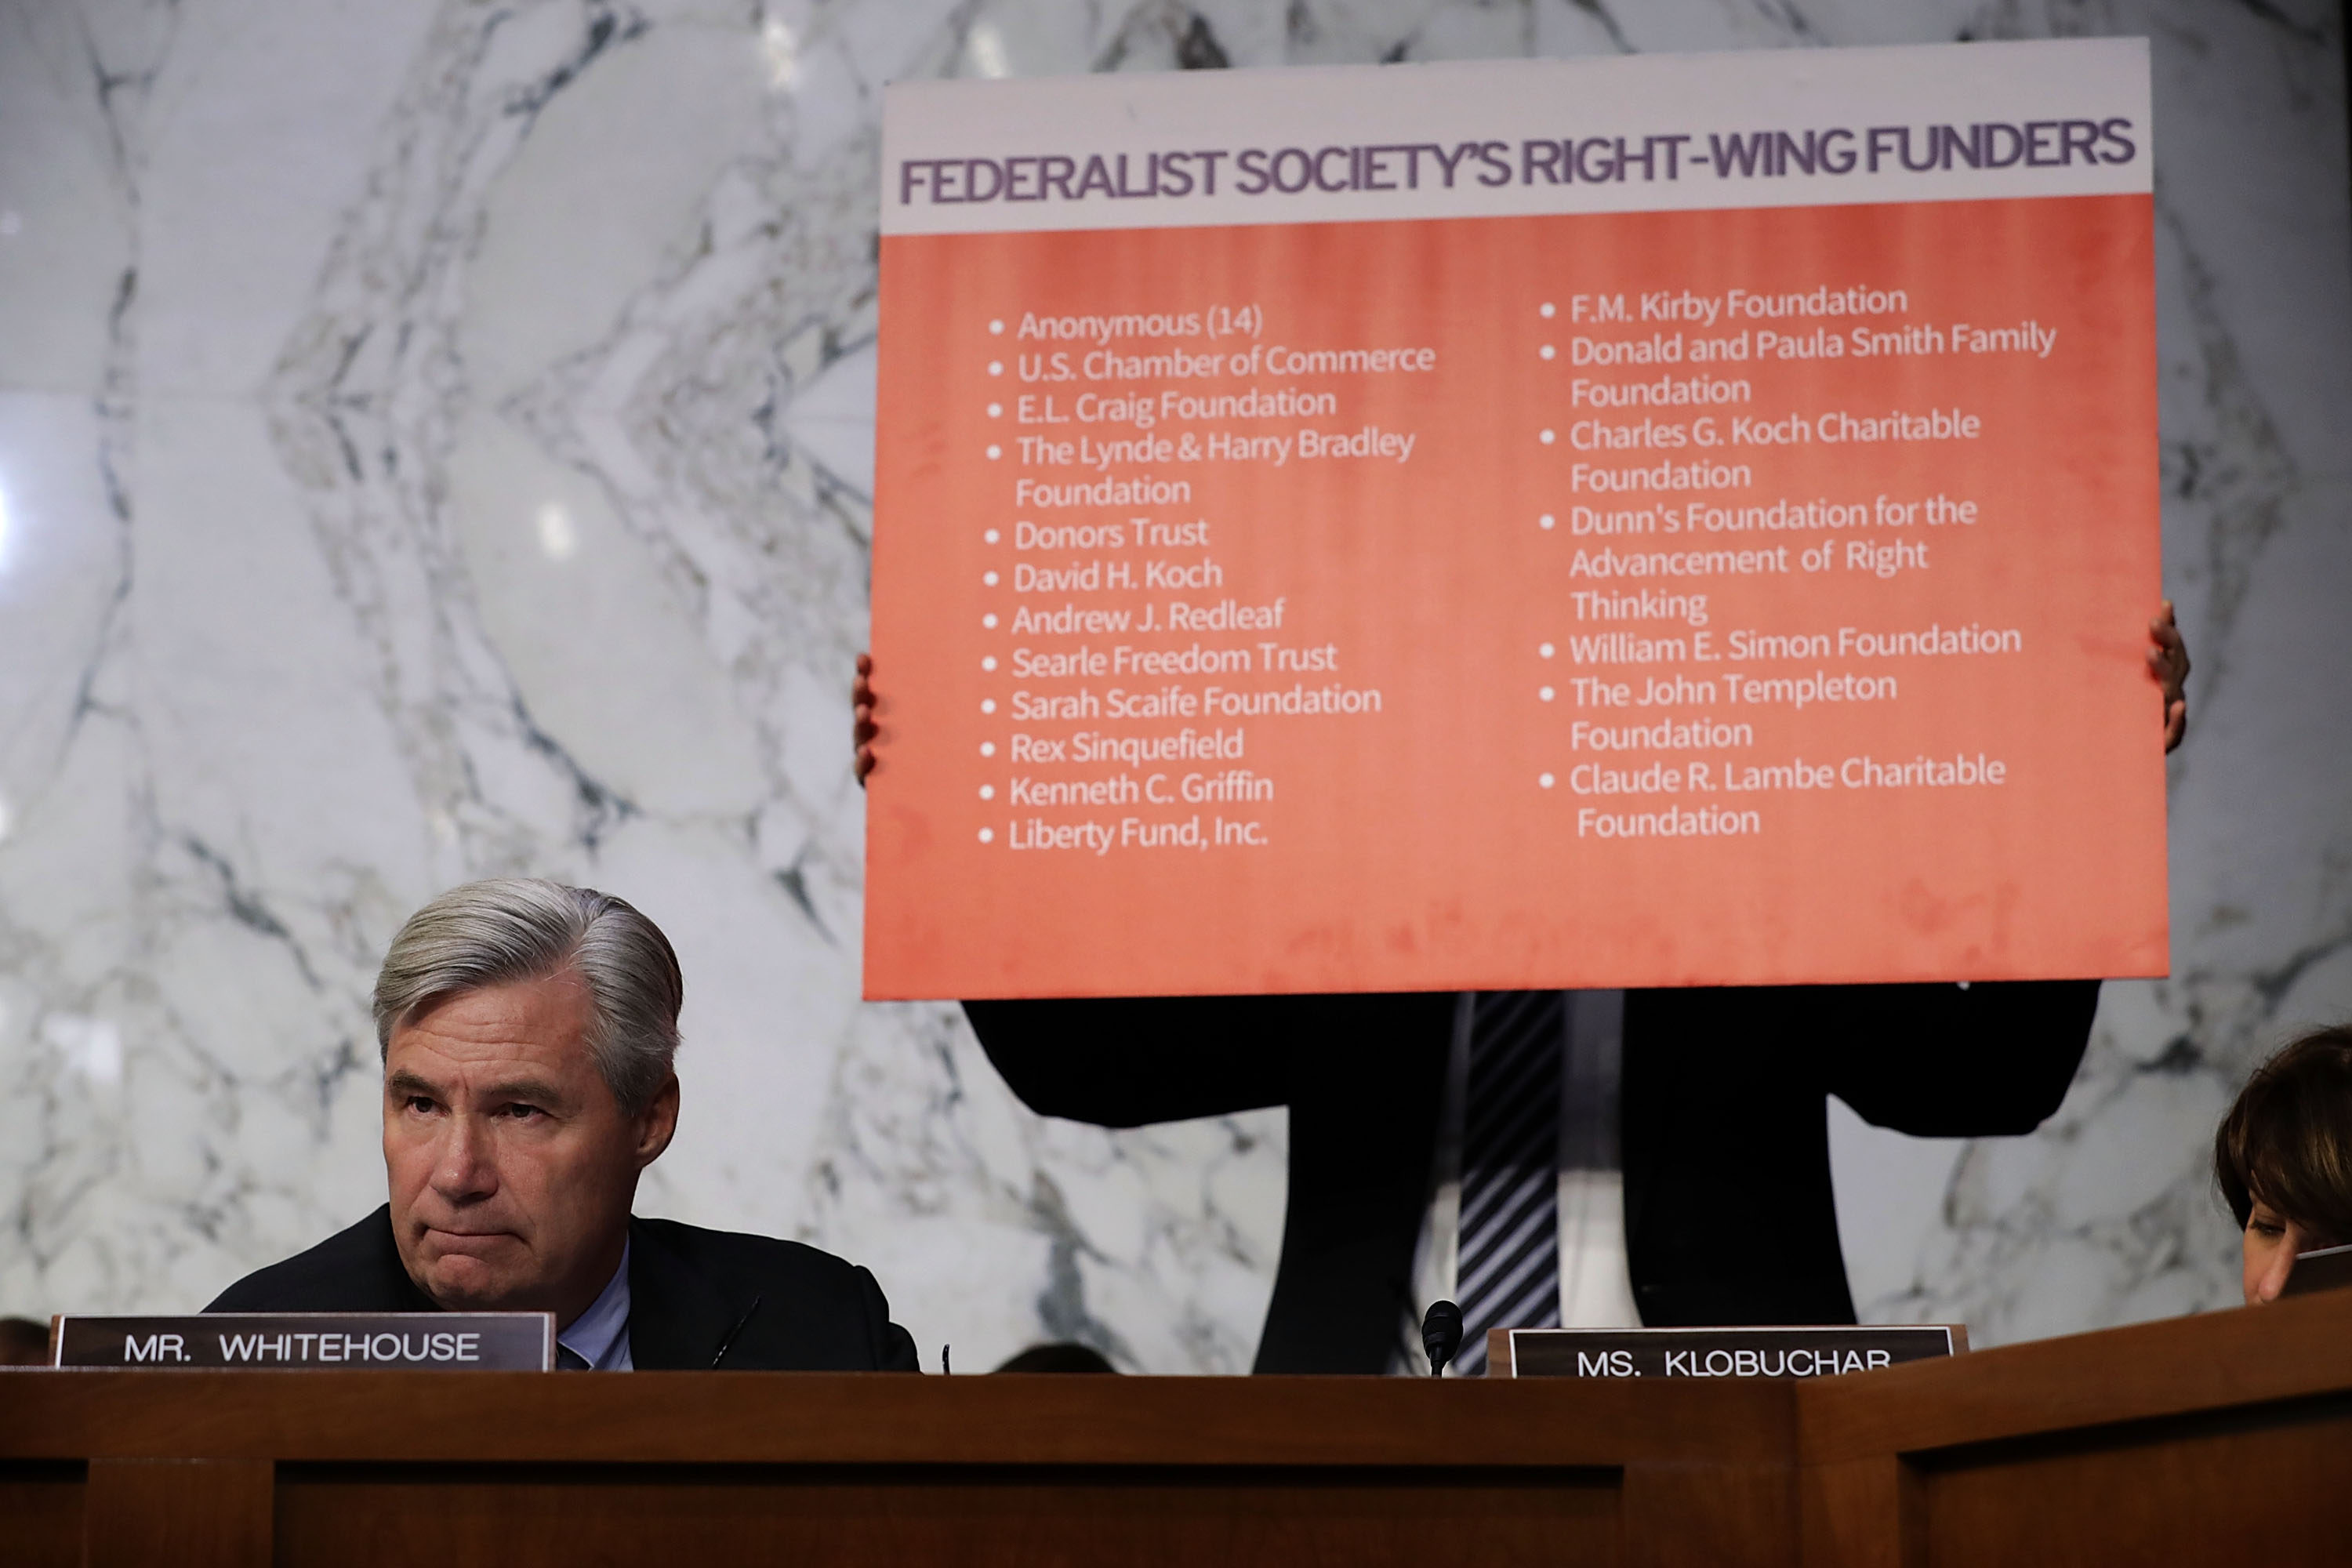 Sen. Sheldon Whitehouse (D-RI) questions Justice Brett Kavanaugh during a Supreme Court confirmation hearing on September 5, 2018. (Chip Somodevilla/Getty Images)